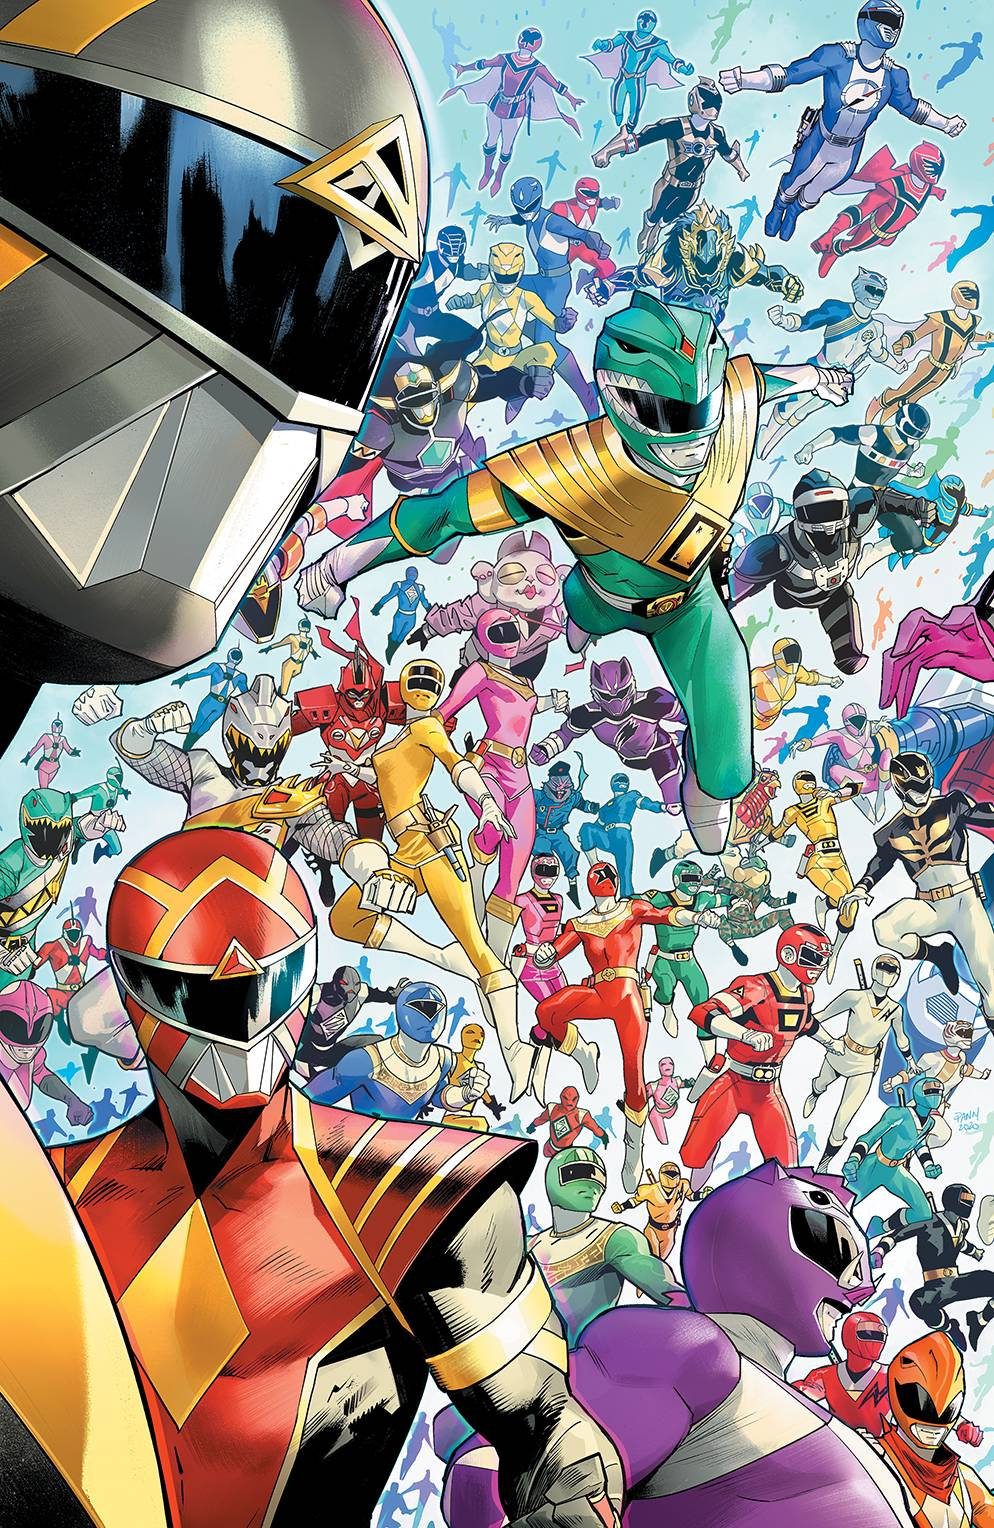 MIGHTY MORPHIN #1 10 COPY MORA INCENTIVE VARIANT